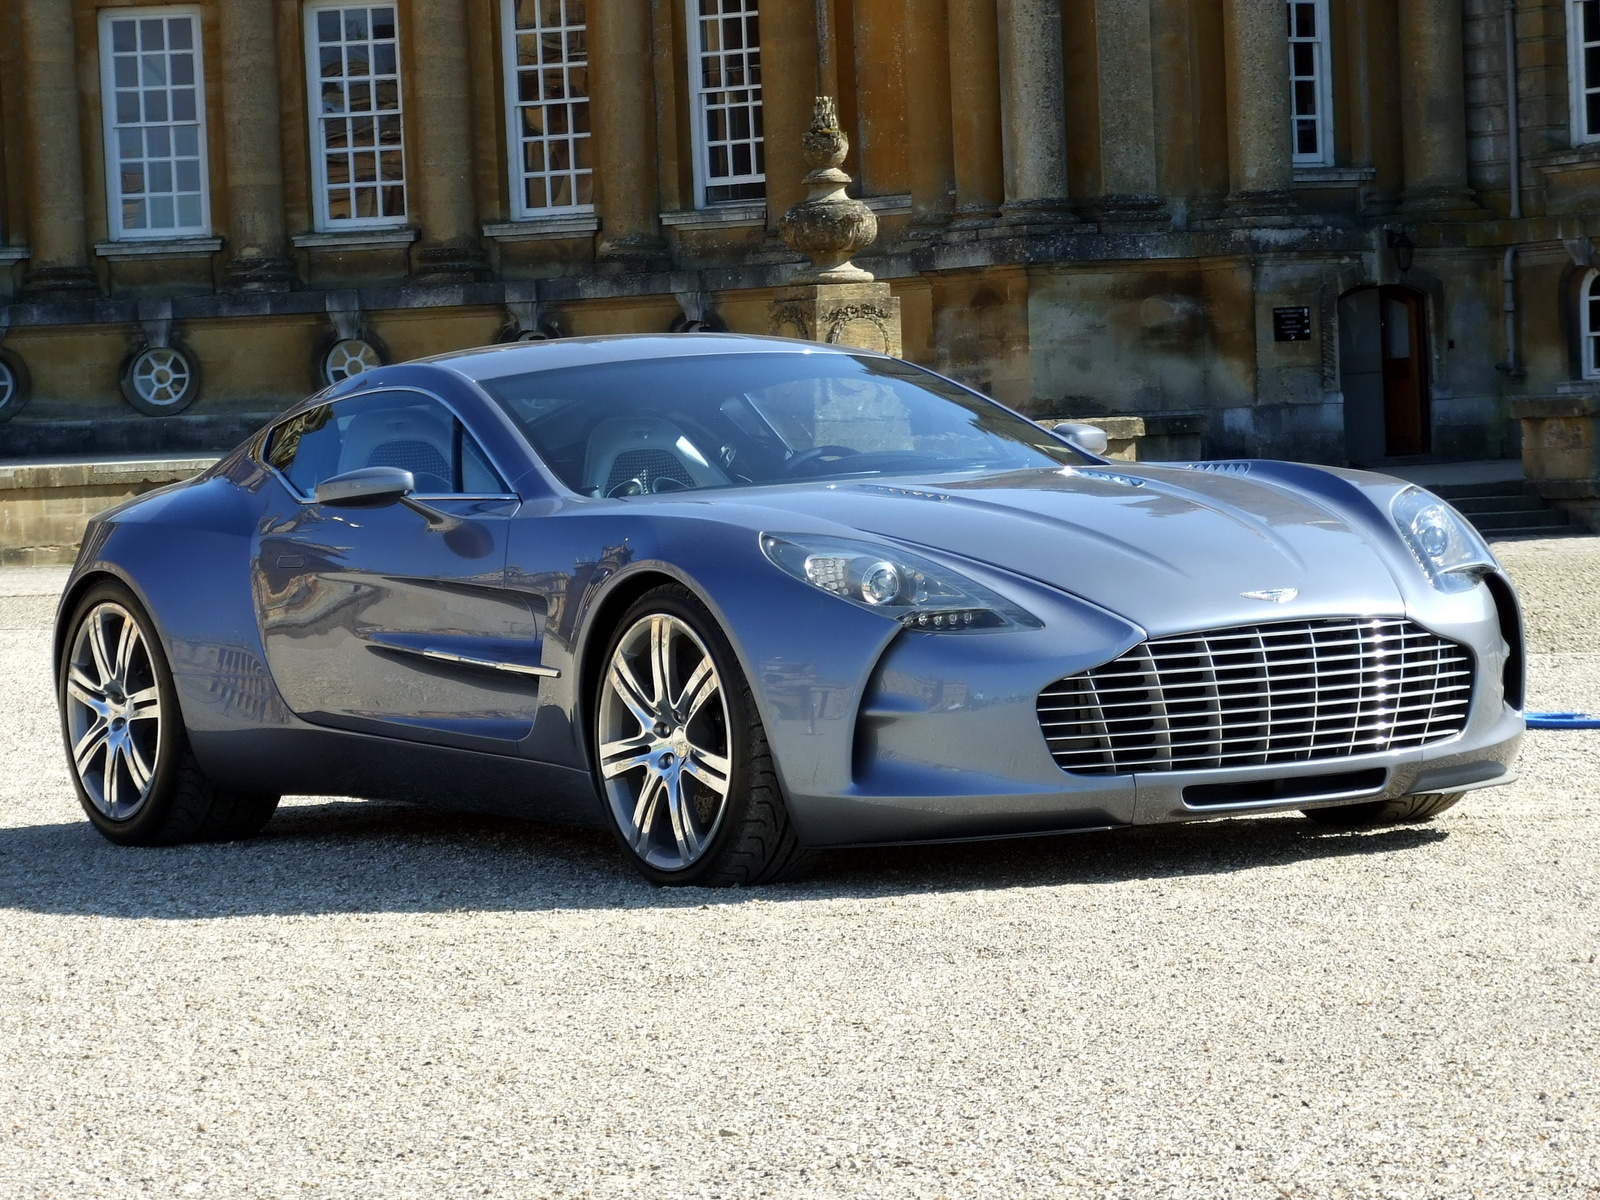 2019 Aston Martin One 77 photo - 3